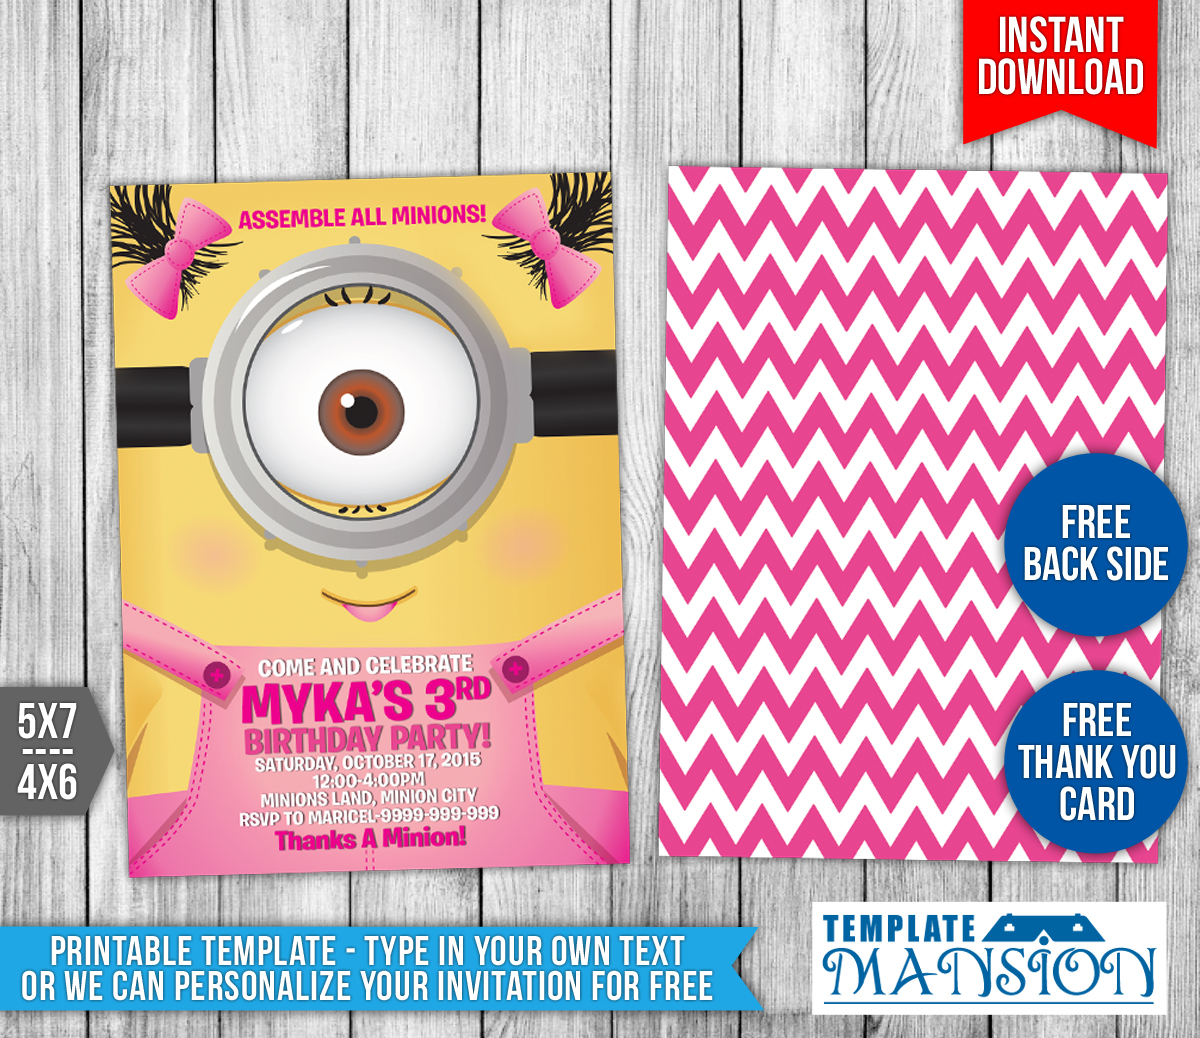 Girl minions birthday invitation template 8 by templatemansion on girl minions birthday invitation template 8 by templatemansion stopboris Images